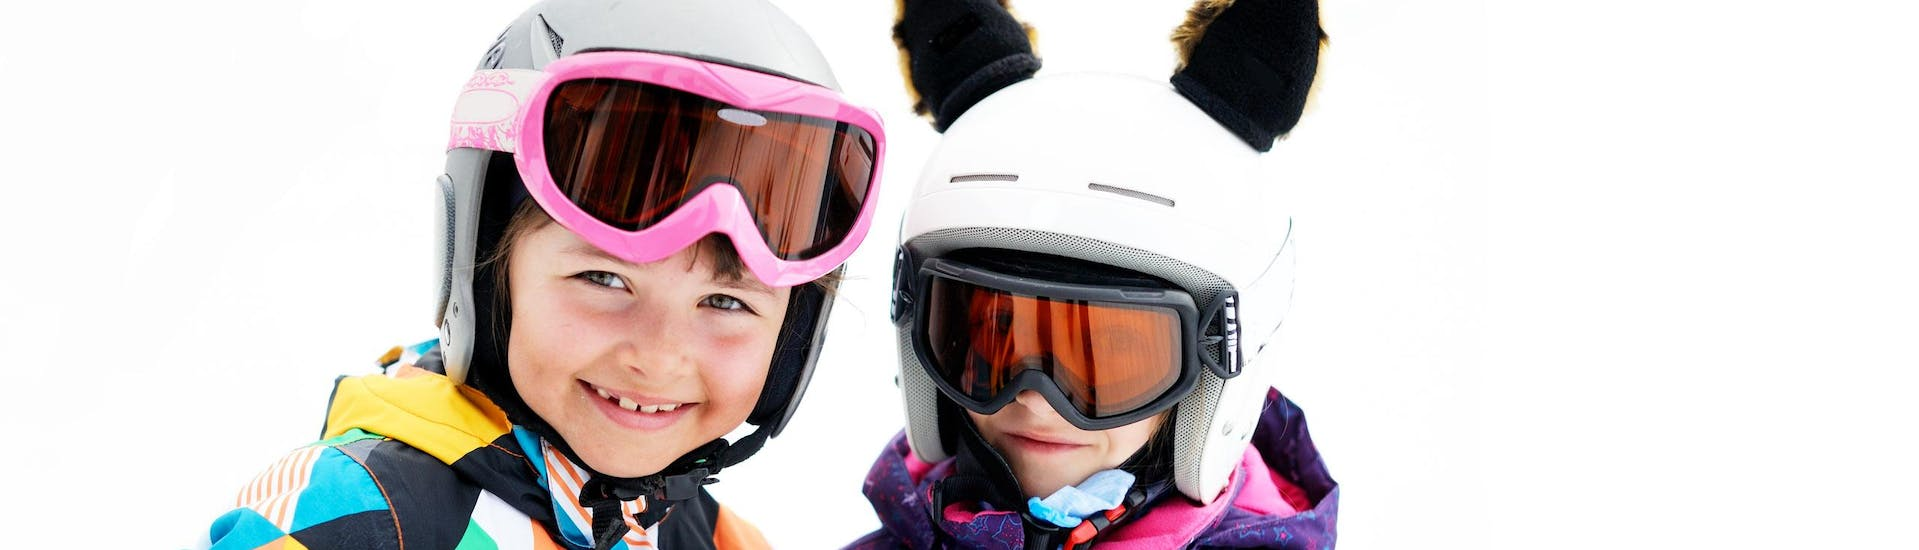 Two young children smiling at the camera during one of the Ski Lessons for Kids (All Ages) - Beginners organised by Wintersport School Gerlos.